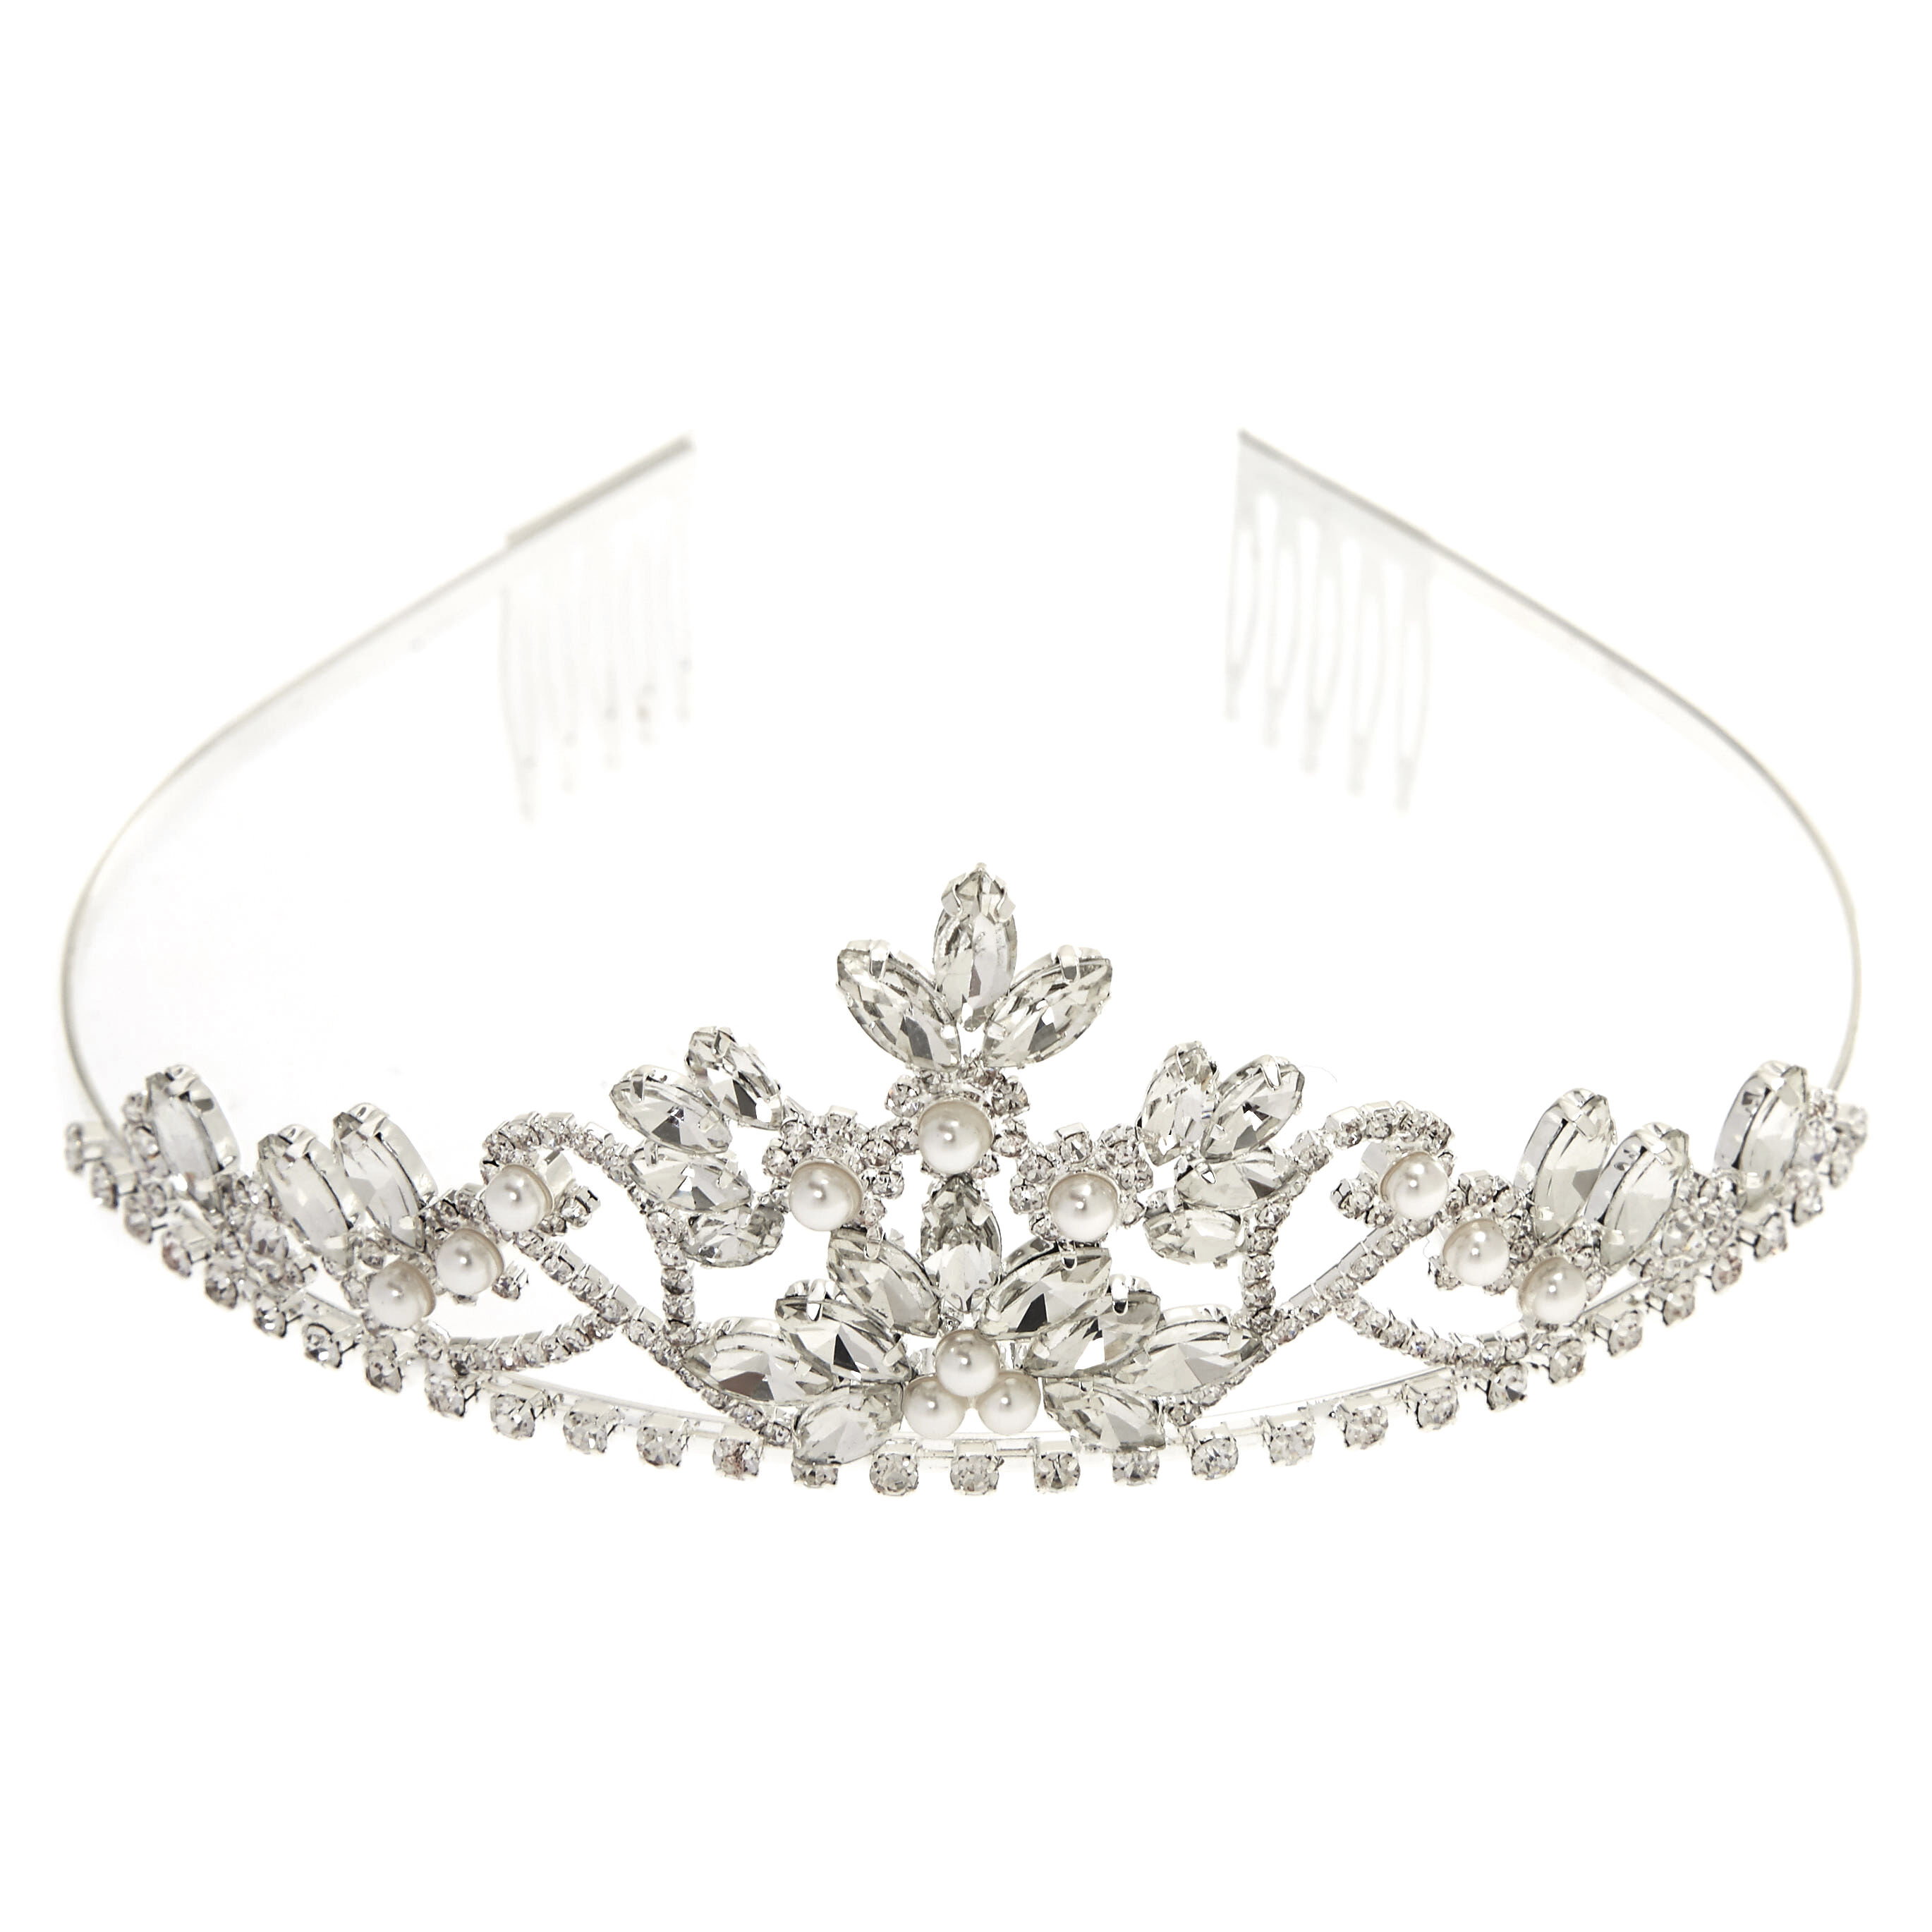 Where to Get Tiaras